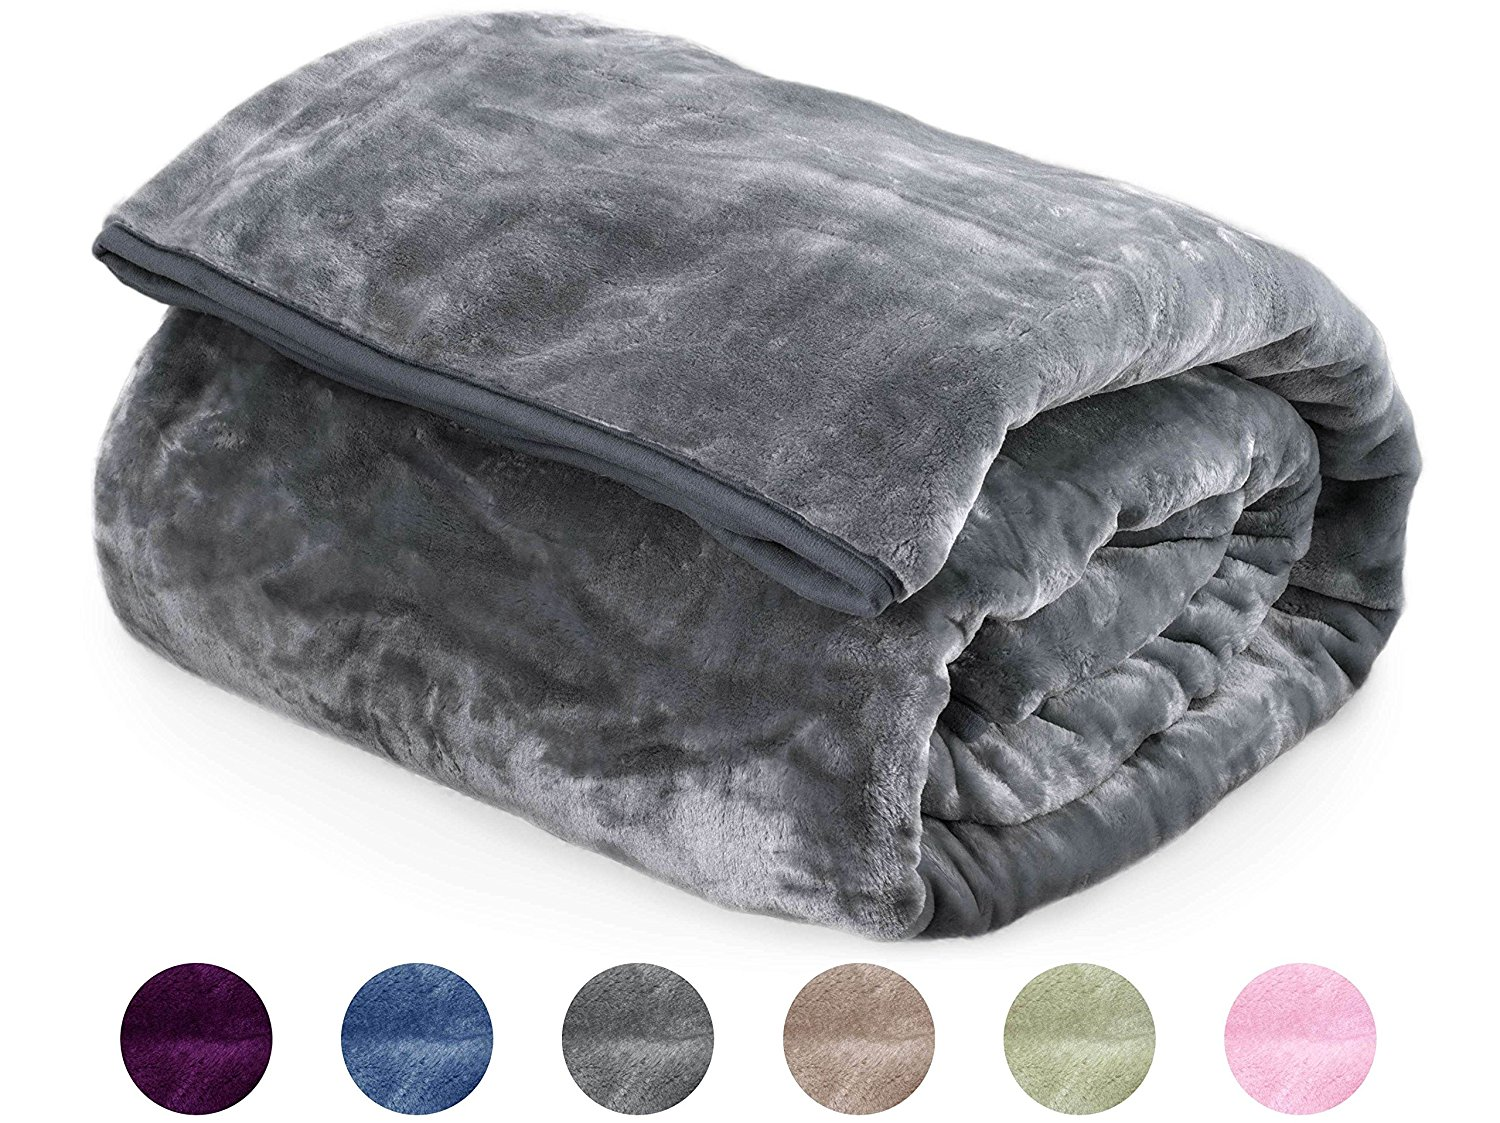 "Archangel Ultra Silky Soft Heavy Duty Quality Korean Mink Reversible Cloud Blanket Solid Ash Charcoal Queen 83""x94"""